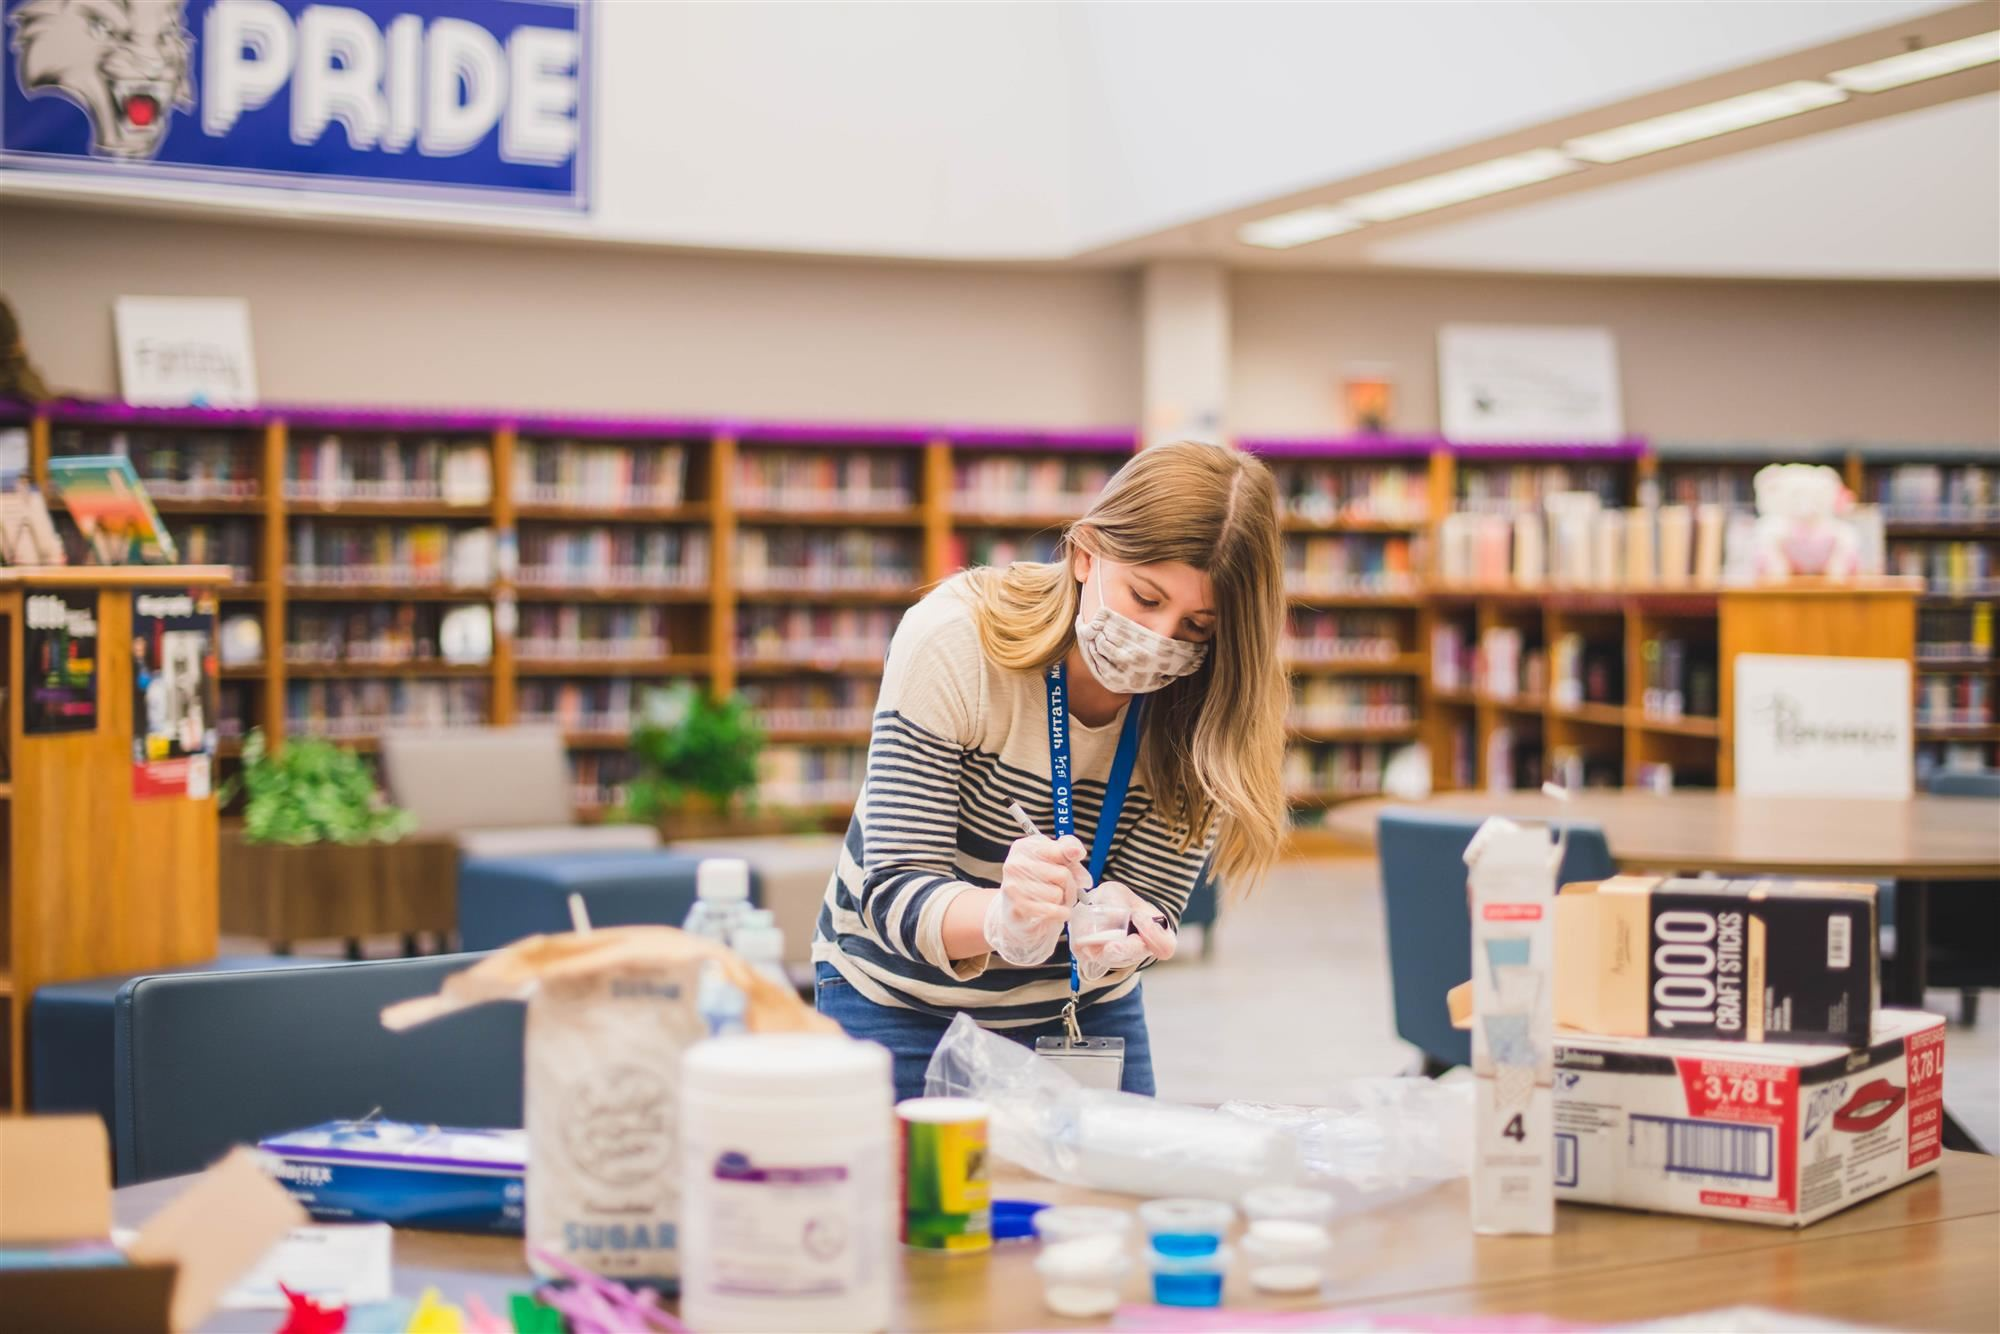 Librarian creates maker space kits for students